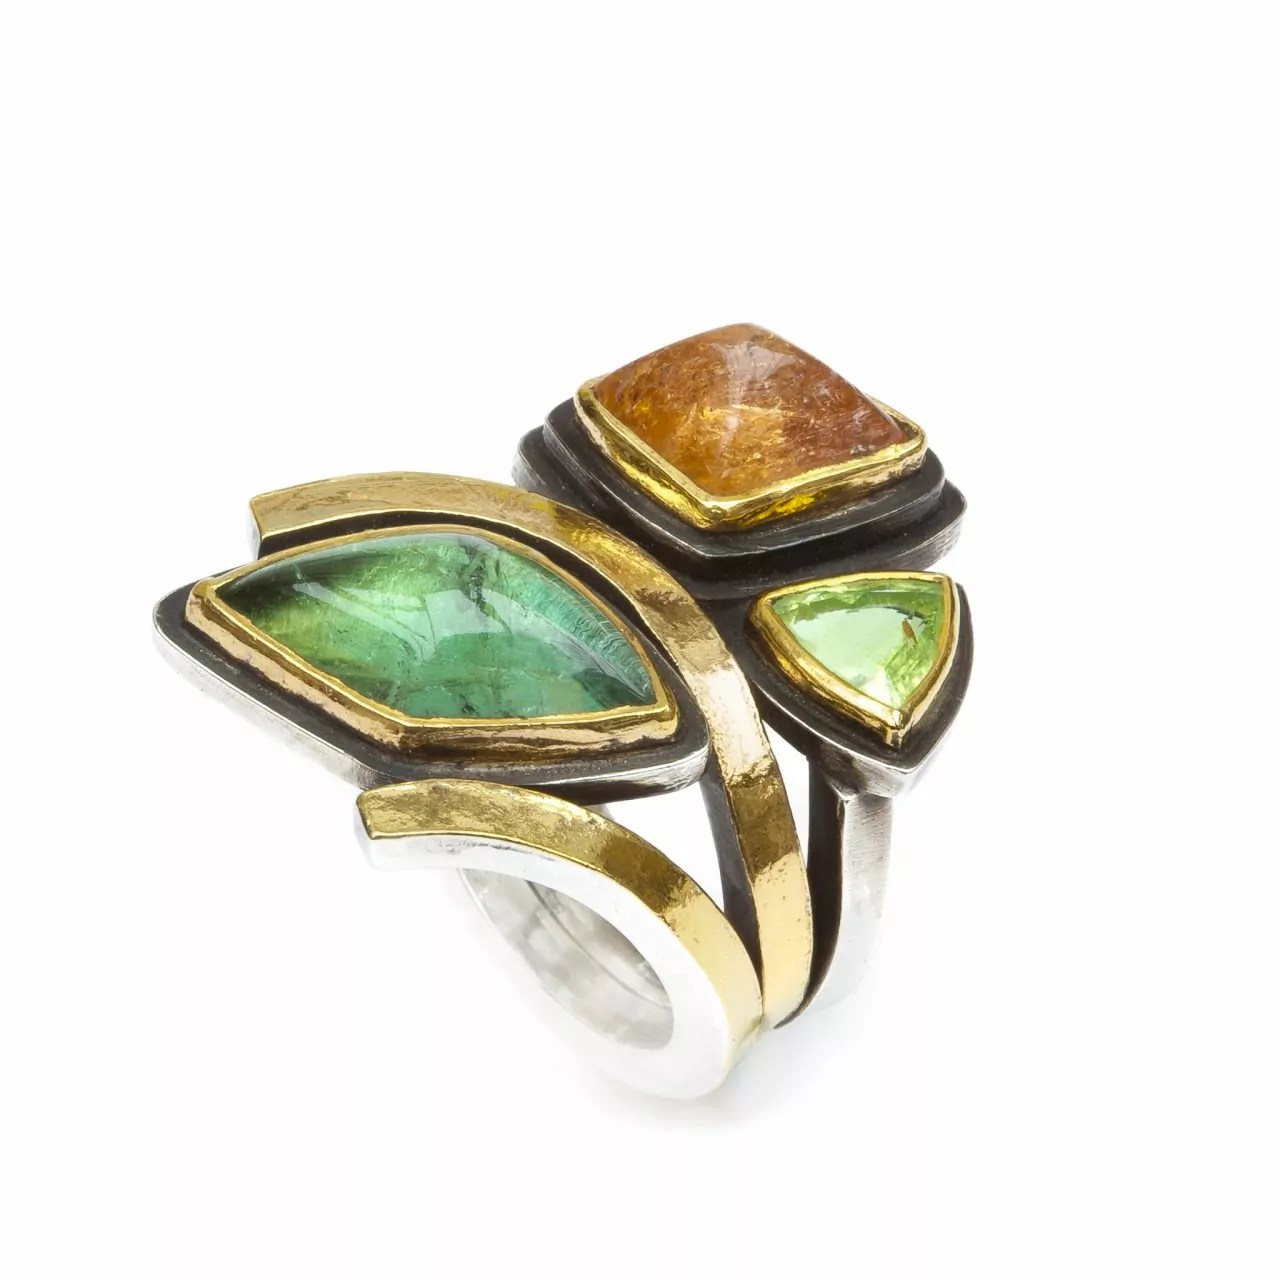 Ring with Tourmaline and Imperial Topaz